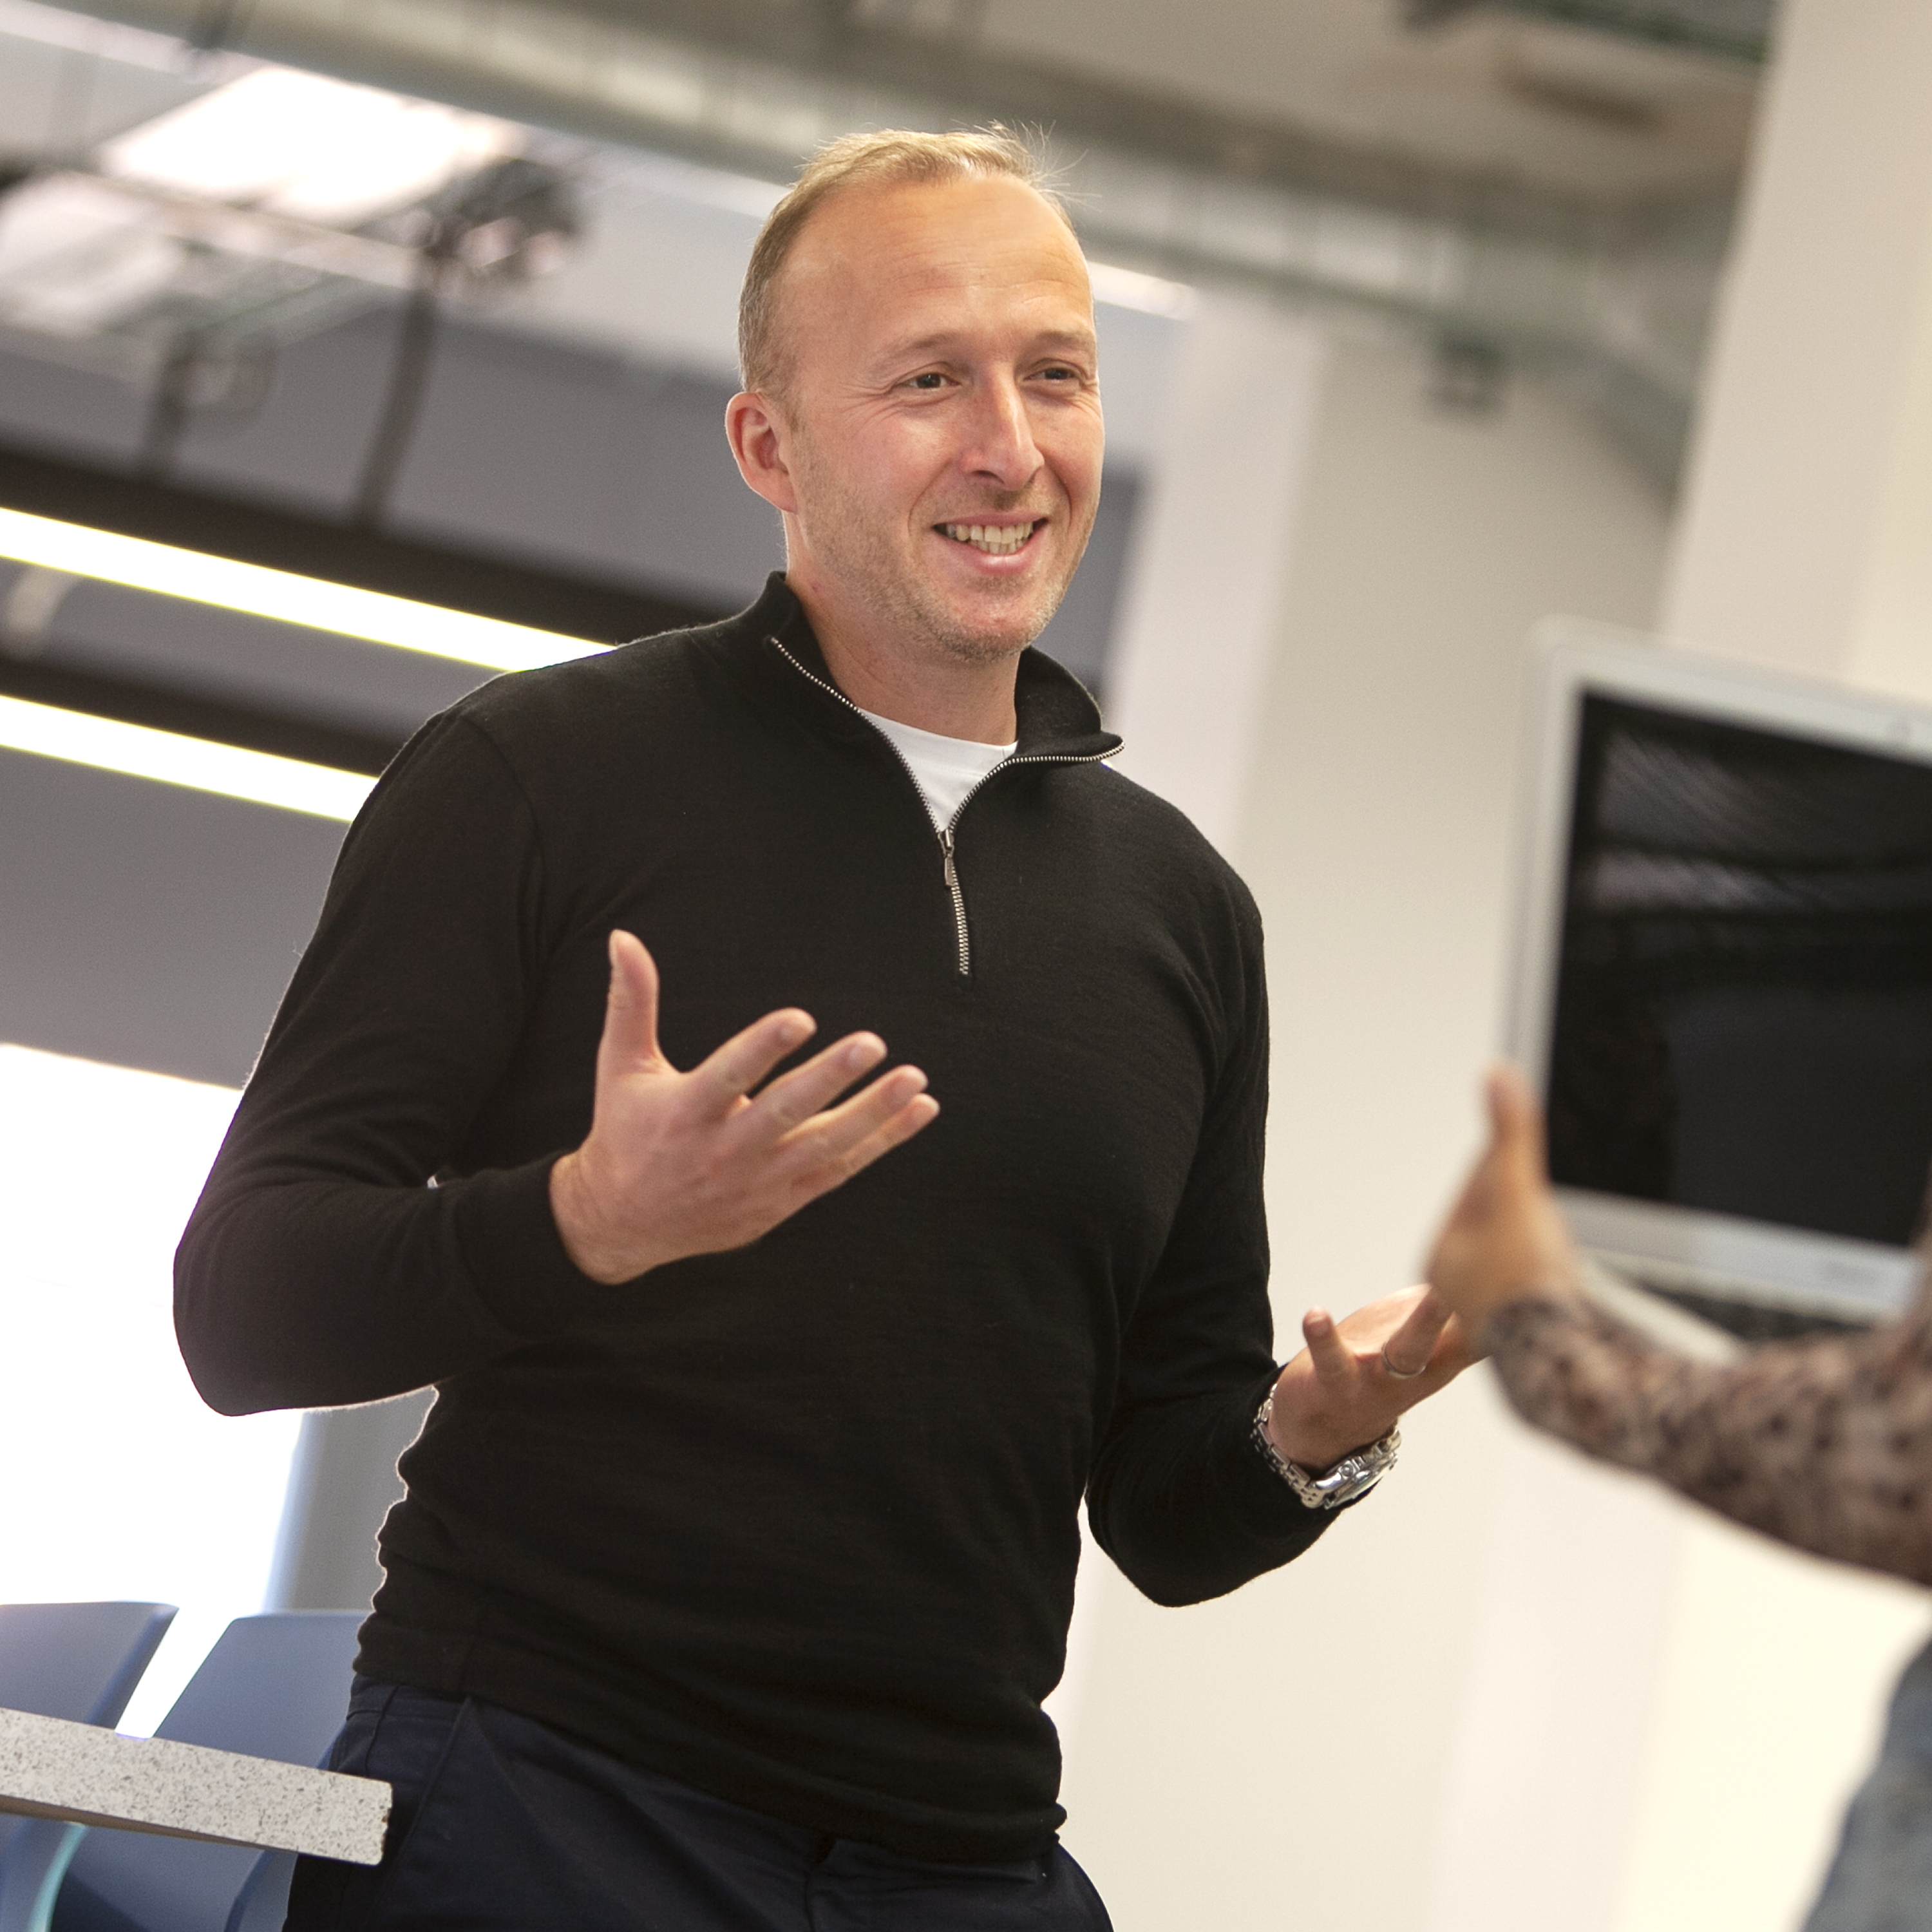 East Midlands Recruitment firm cements business growth with global team expansion